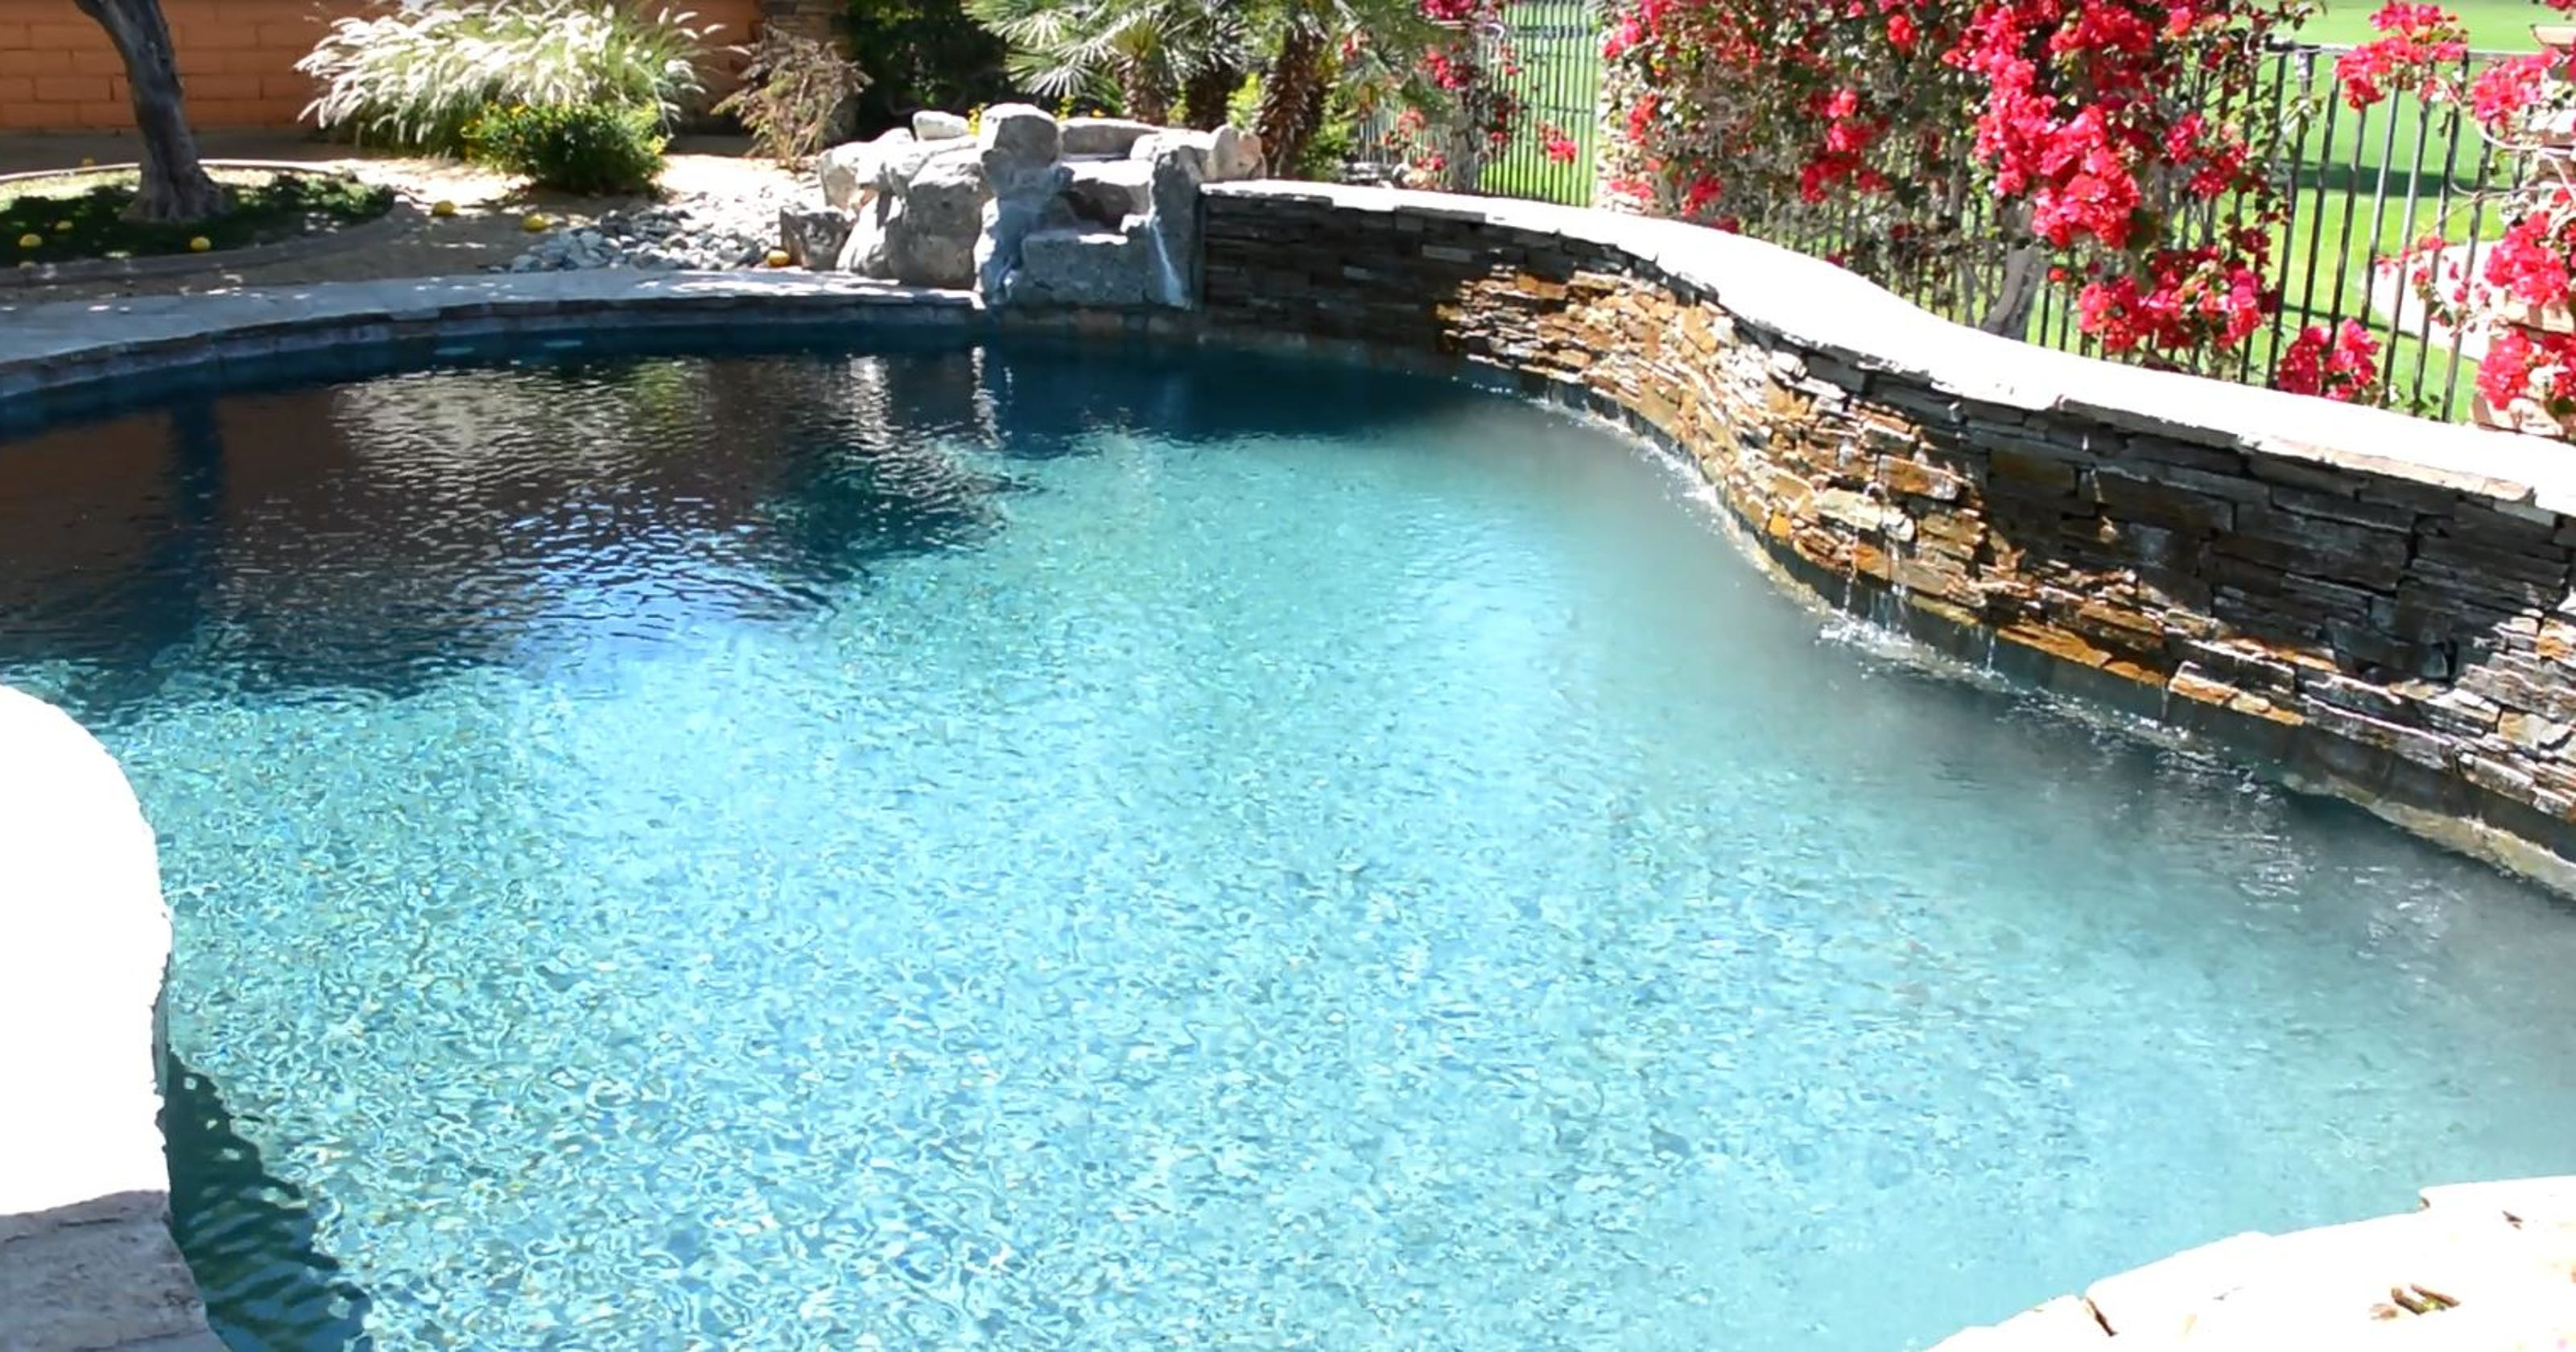 Com Installation Of The Kill Switch And Heater Backdate For 911 Pool Safety How To Avoid Electric Shock In Water